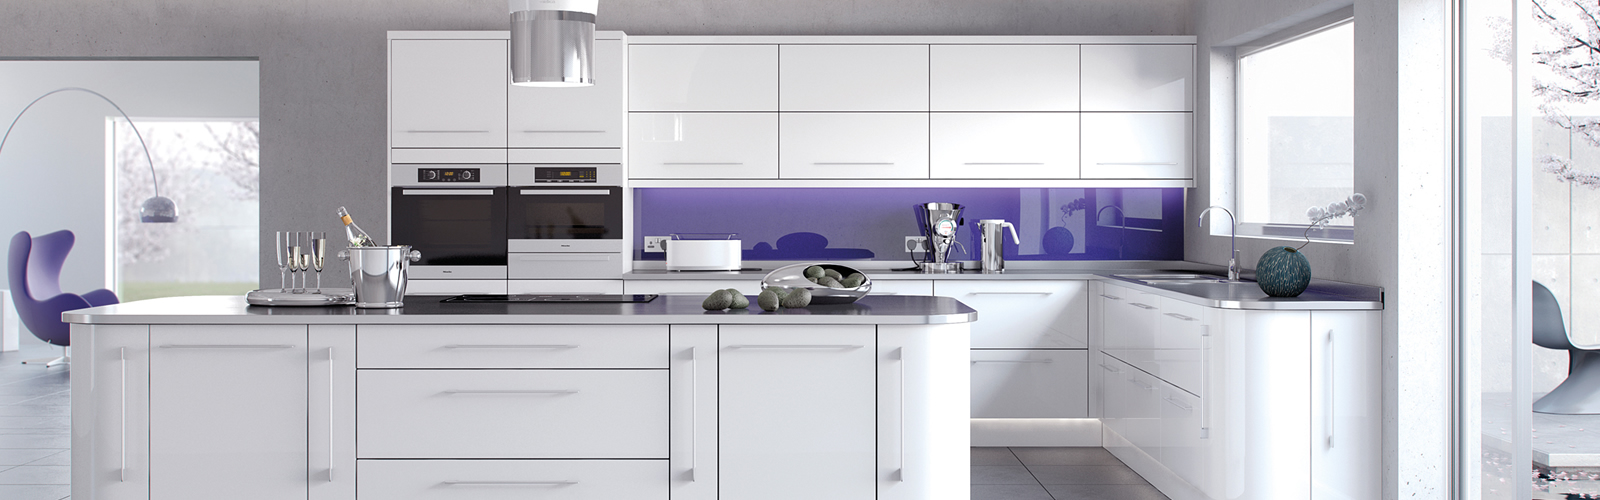 Kitchen Fitters Morley, Fitted Kitchens Morley